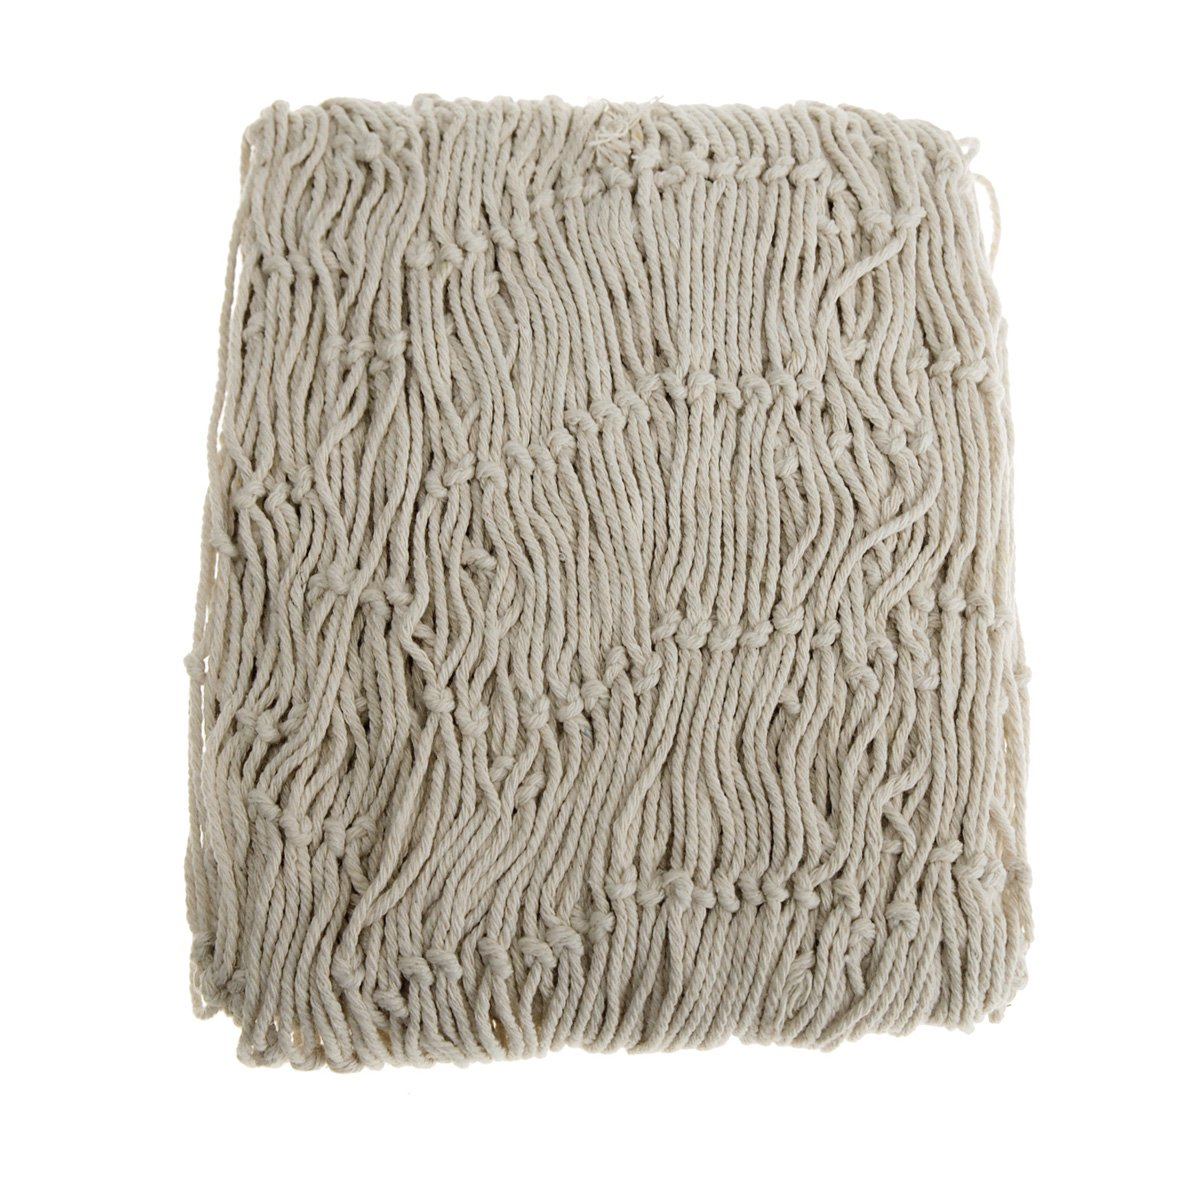 Fish Netting Rope Party Theme Decor, Ivory, 6.6-Feet